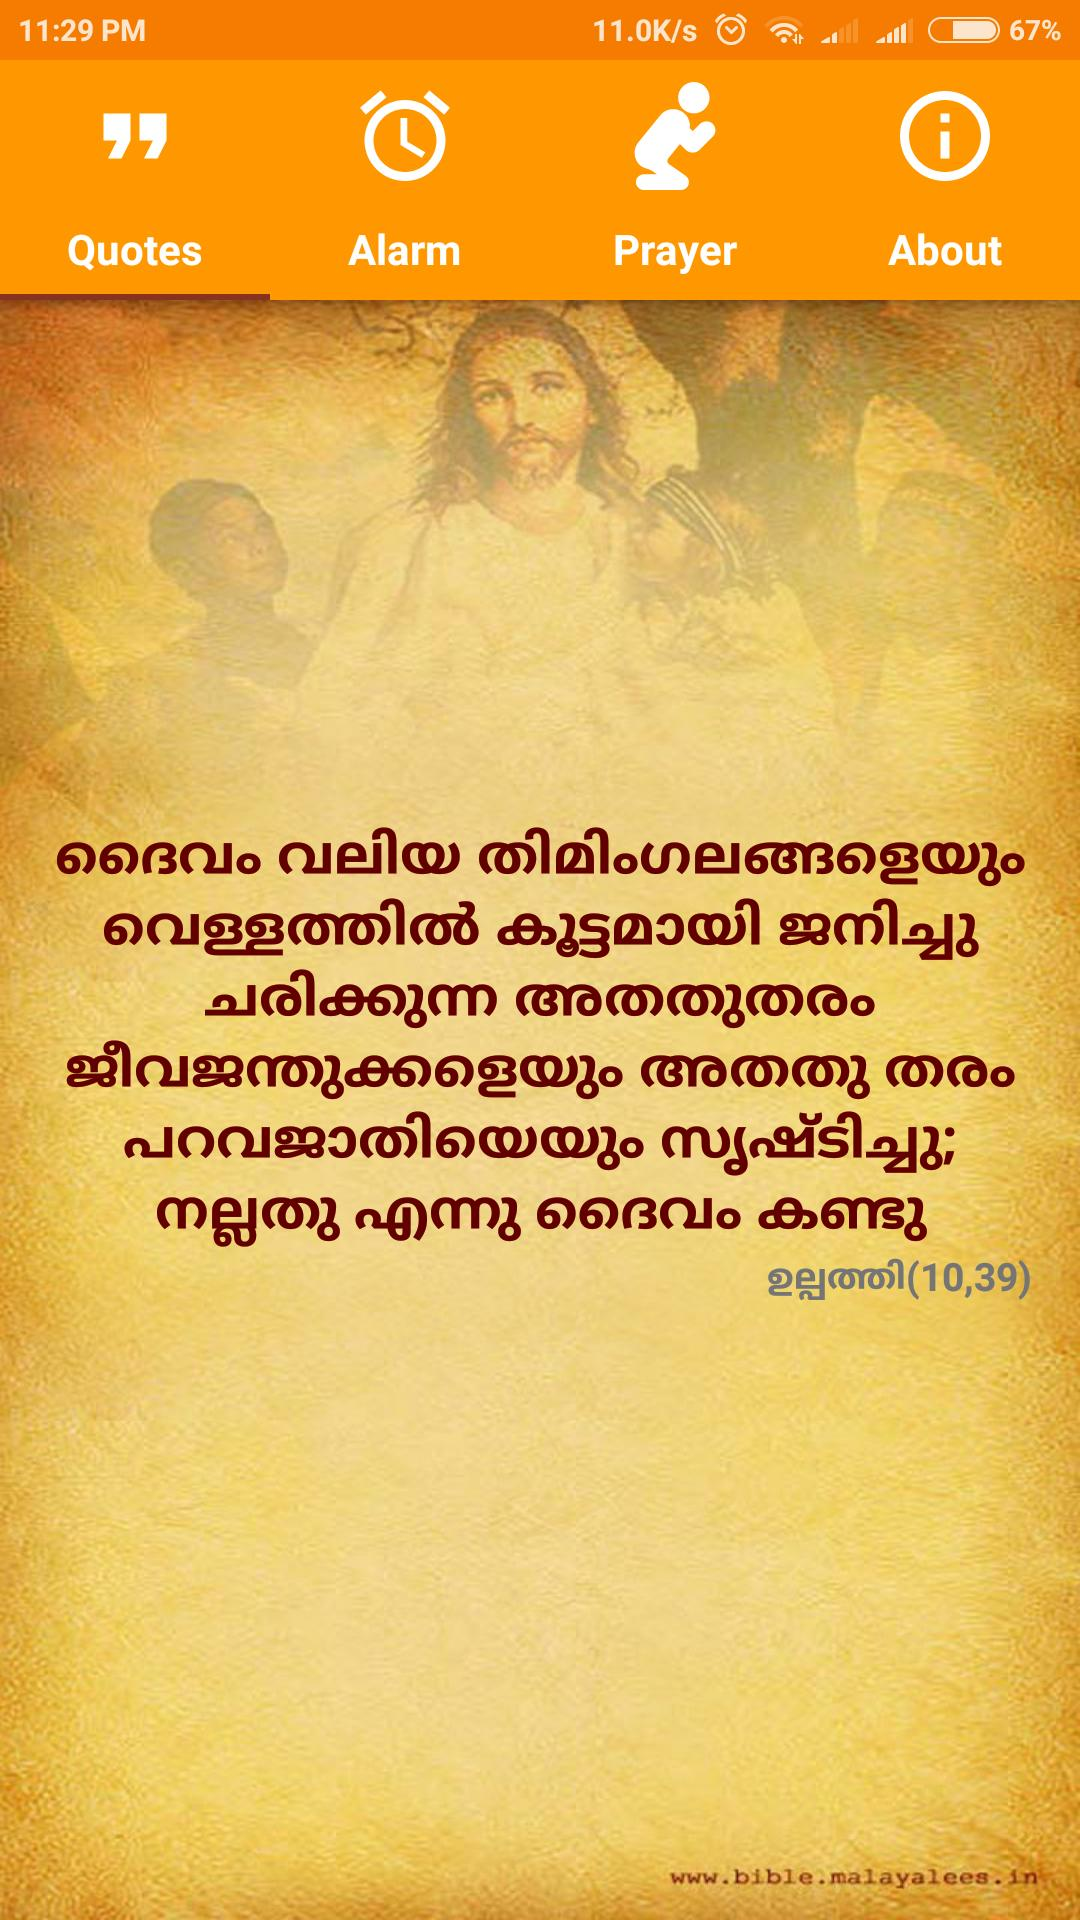 Malayalam Bible Quotes Alarm for Android - APK Download